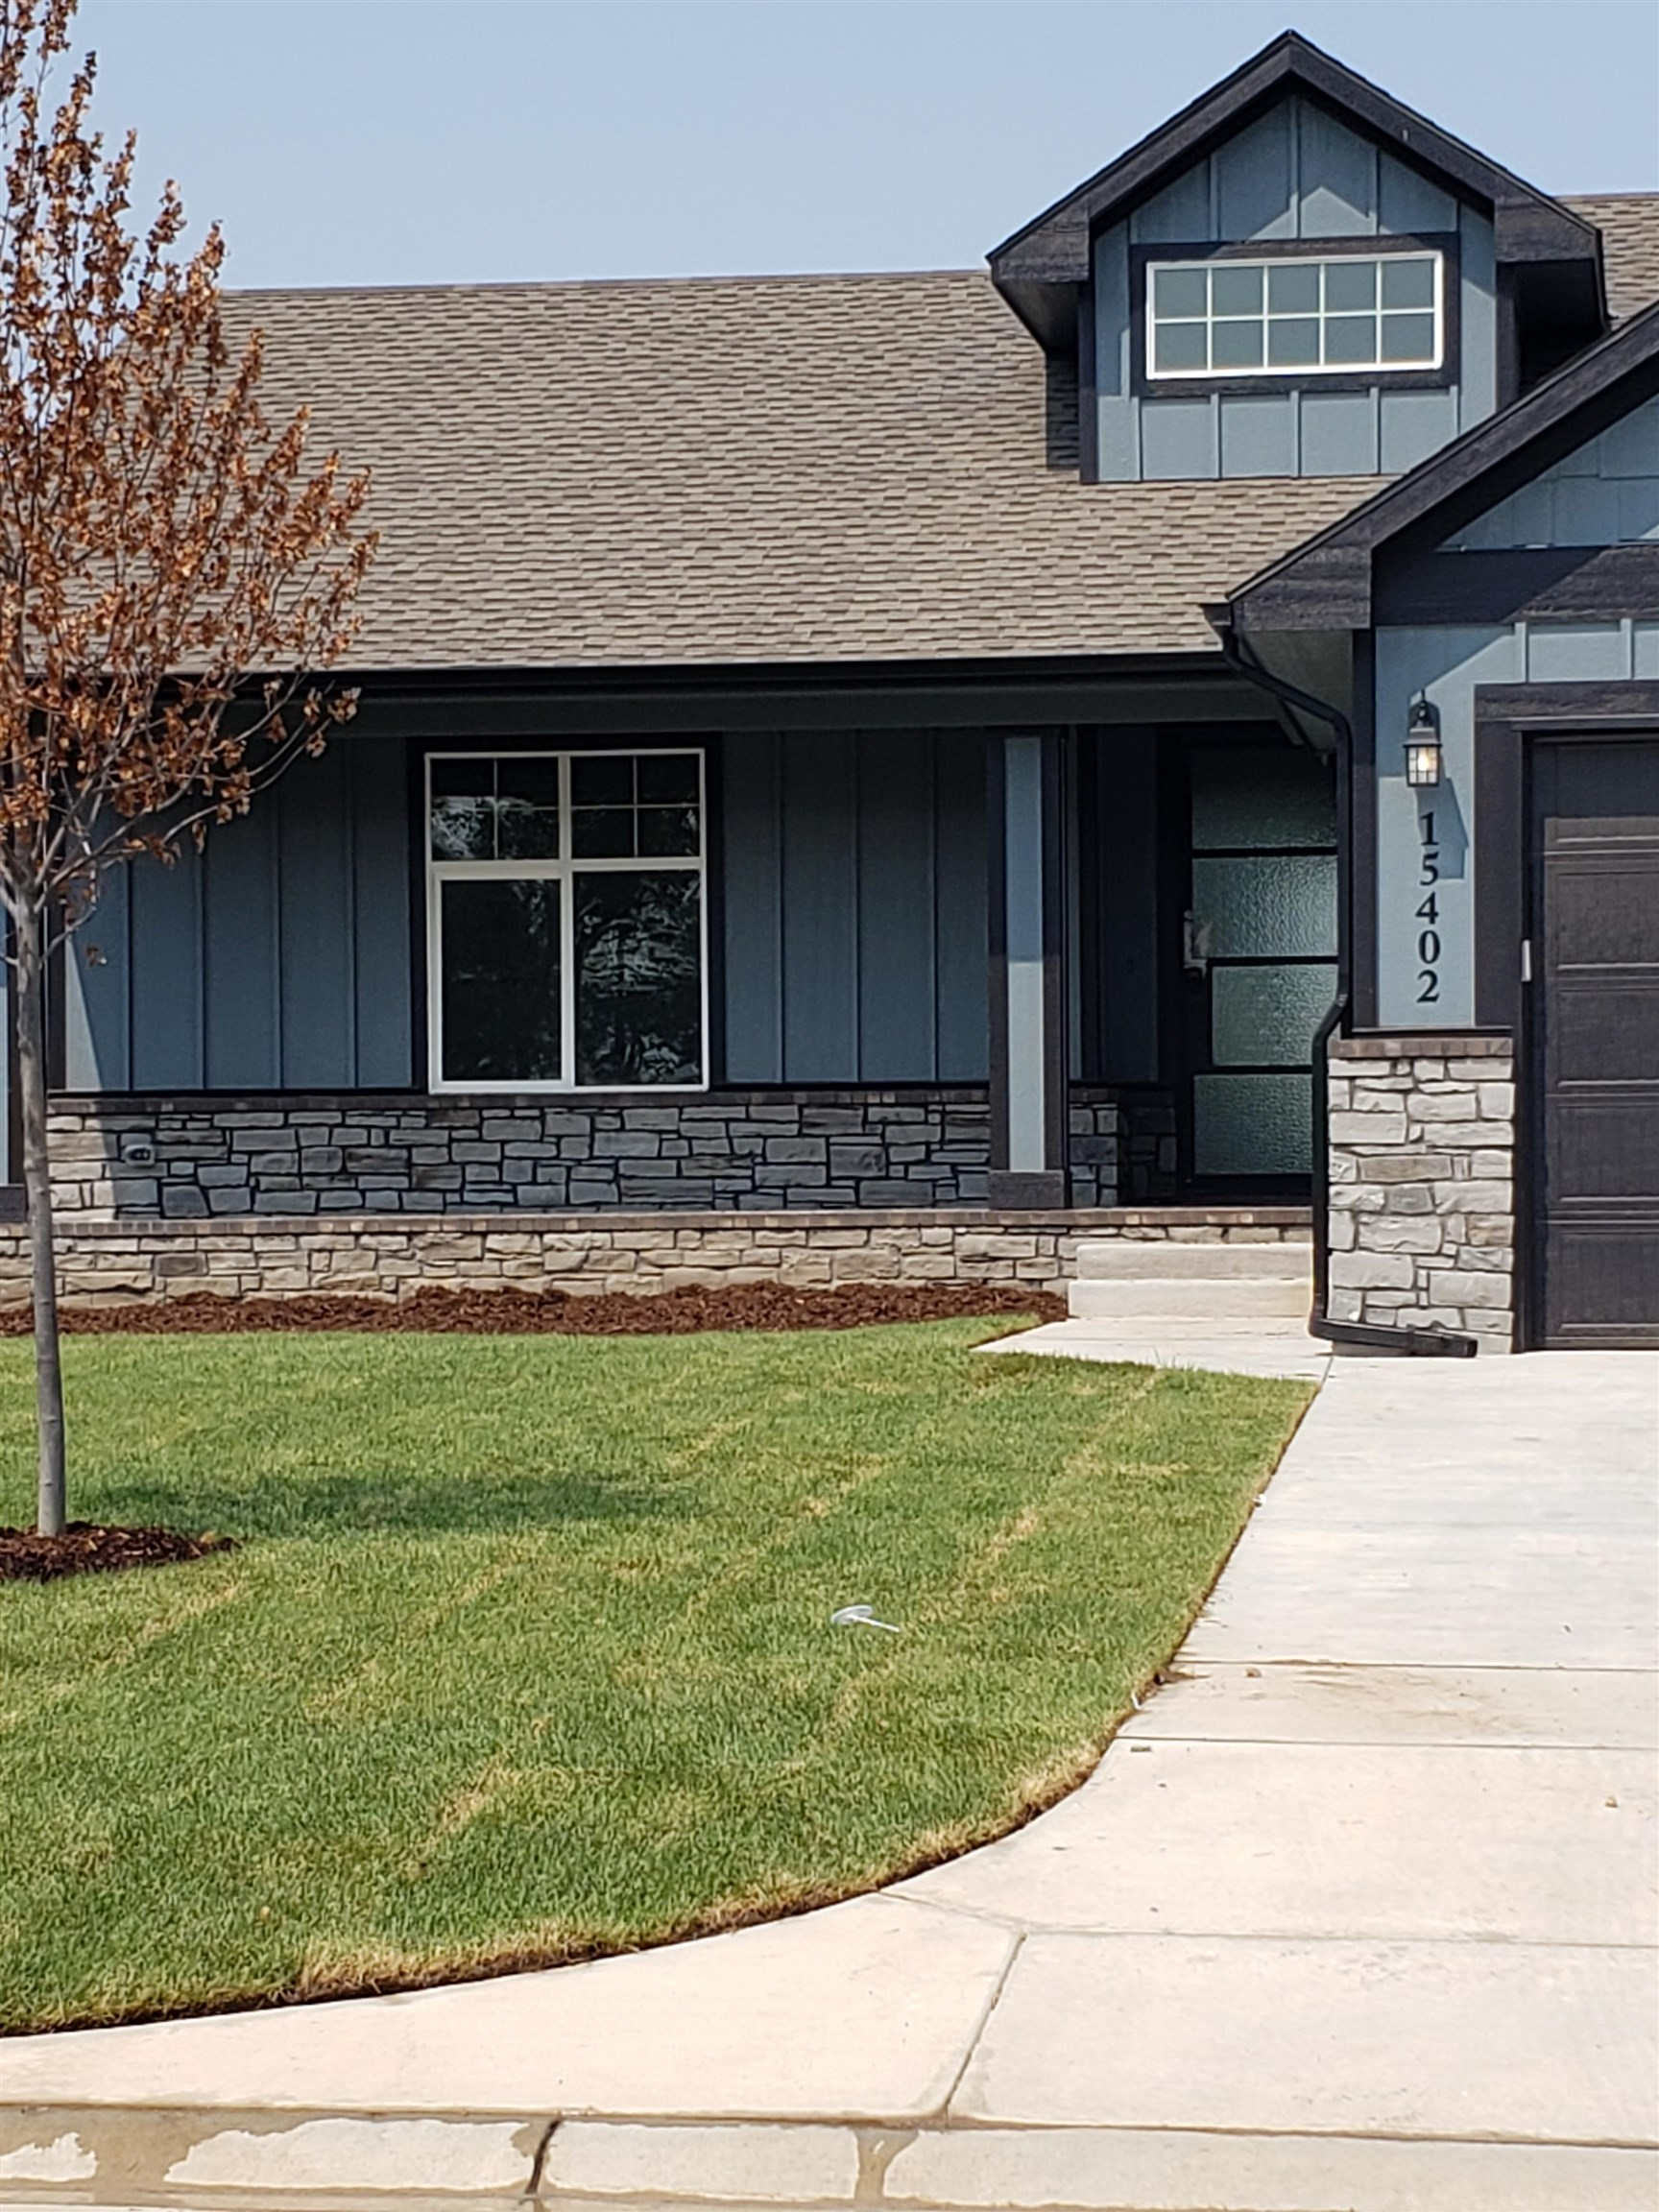 NEW construction Ranch has an open floor plan with hugh windows, big kitchen island, hidden walk-in pantry, quartz/granite counters, and every bedroom has a walk-in closet! The master bedroom has special wall treatment and the master bath has a door-less walk-in shower. This home has an upgraded energy package, like a tank less water heater, to lower your monthly bills. Finished walk-out walk-up basement has a big family room, wet bar, 2nd walk-in pantry and space for a full size frig! Home is set in a secluded area backing up to water, with a neighborhood saltwater pool, 3 lakes, great fishing, nature trails to enjoy, but has low, 1.16 mil levy Sedgwick Co Taxes! Wichita Schools. Price includes 100 ft well, sprinklers, sod & 2 trees and fully finished basement. Completion date is soon! Welcome Home!